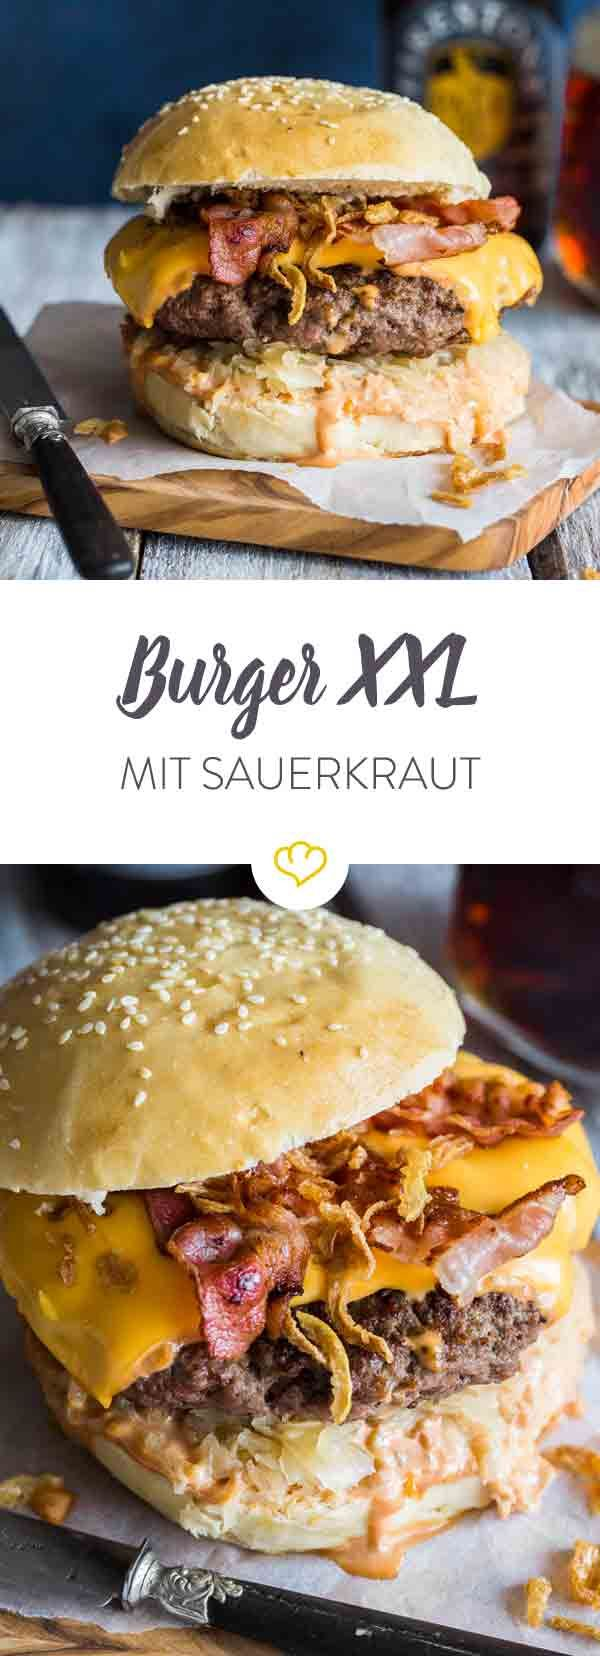 Photo of Burger XXL mit Sauerkraut und Bacon